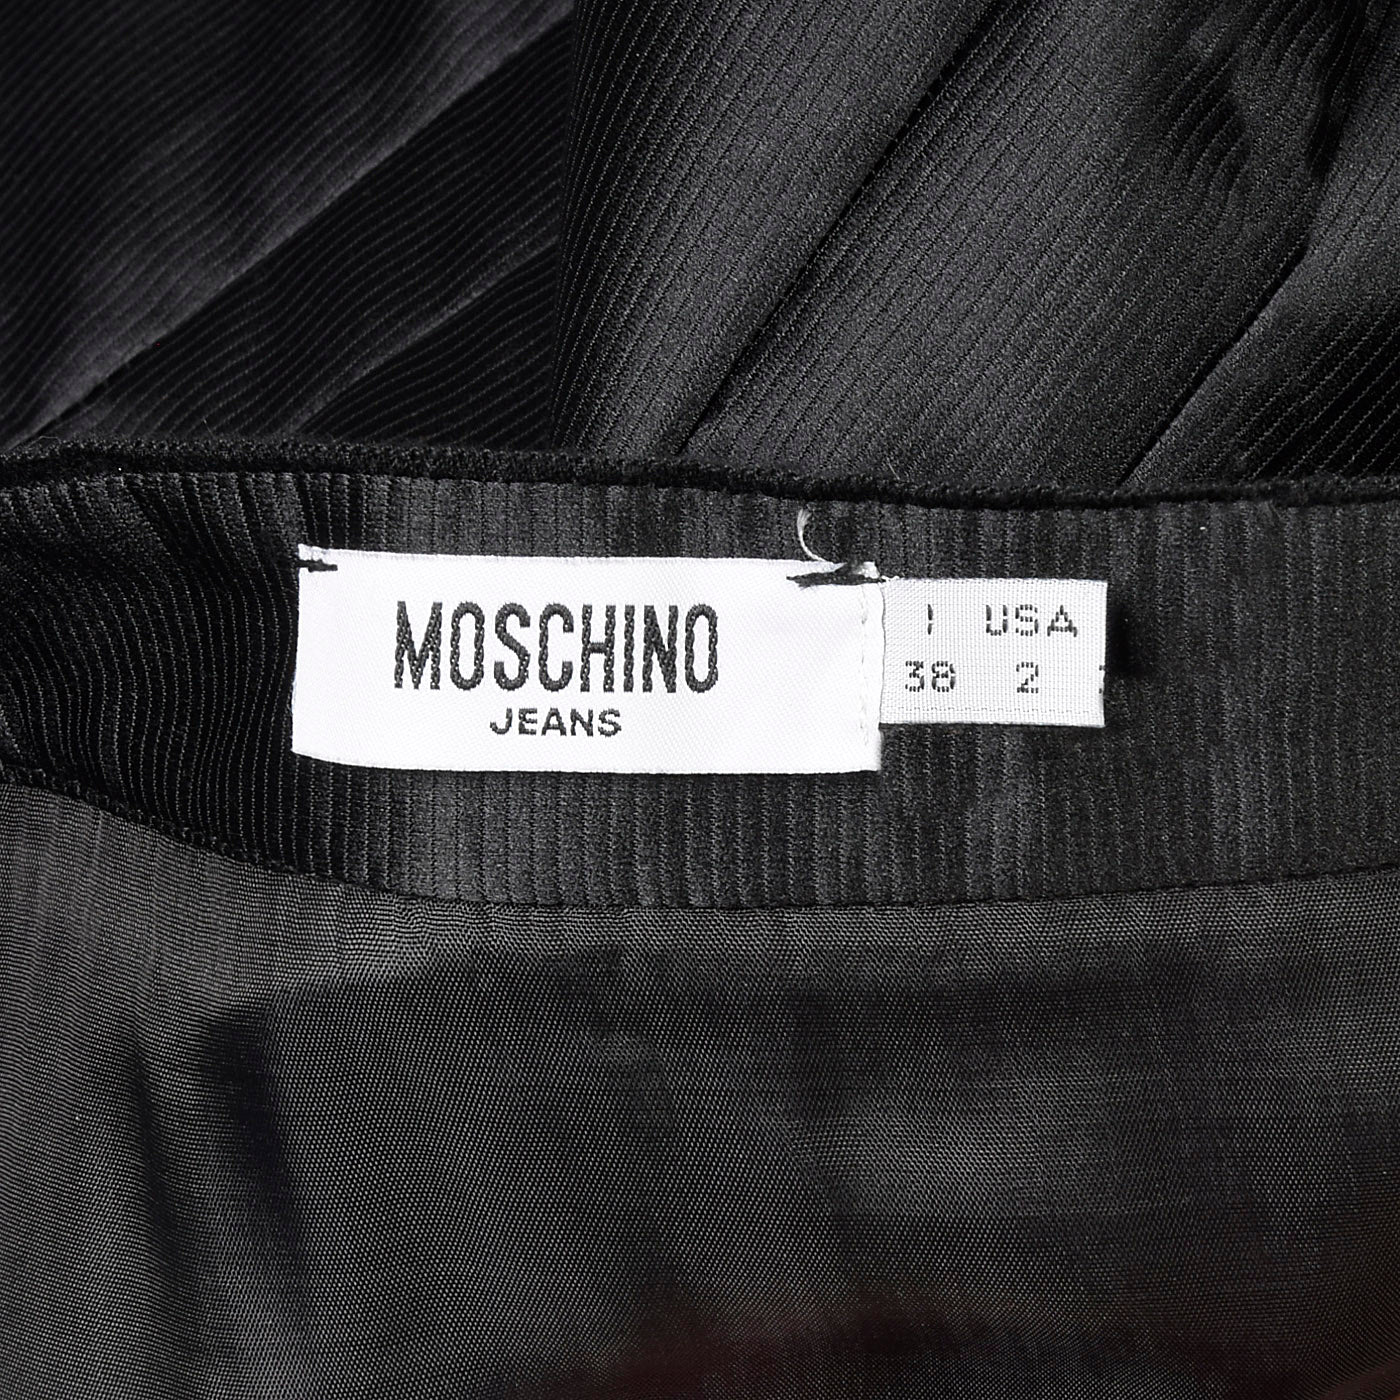 2010s Moschino Jeans Black Bubble Dress